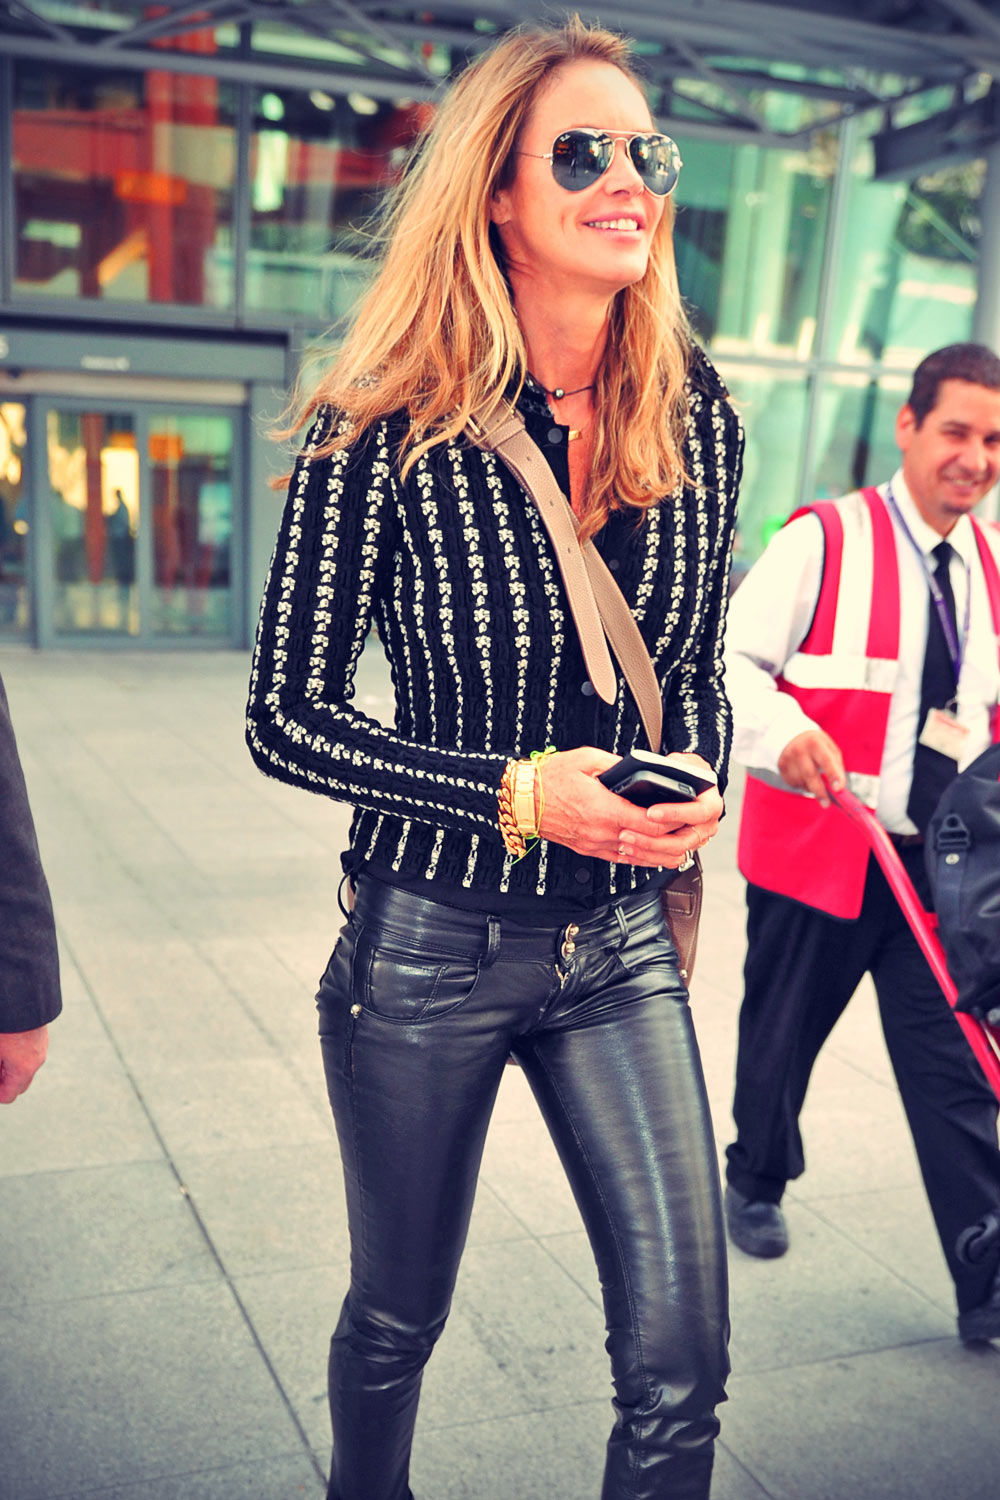 Elle Macpherson arrives at Heathrow Airport